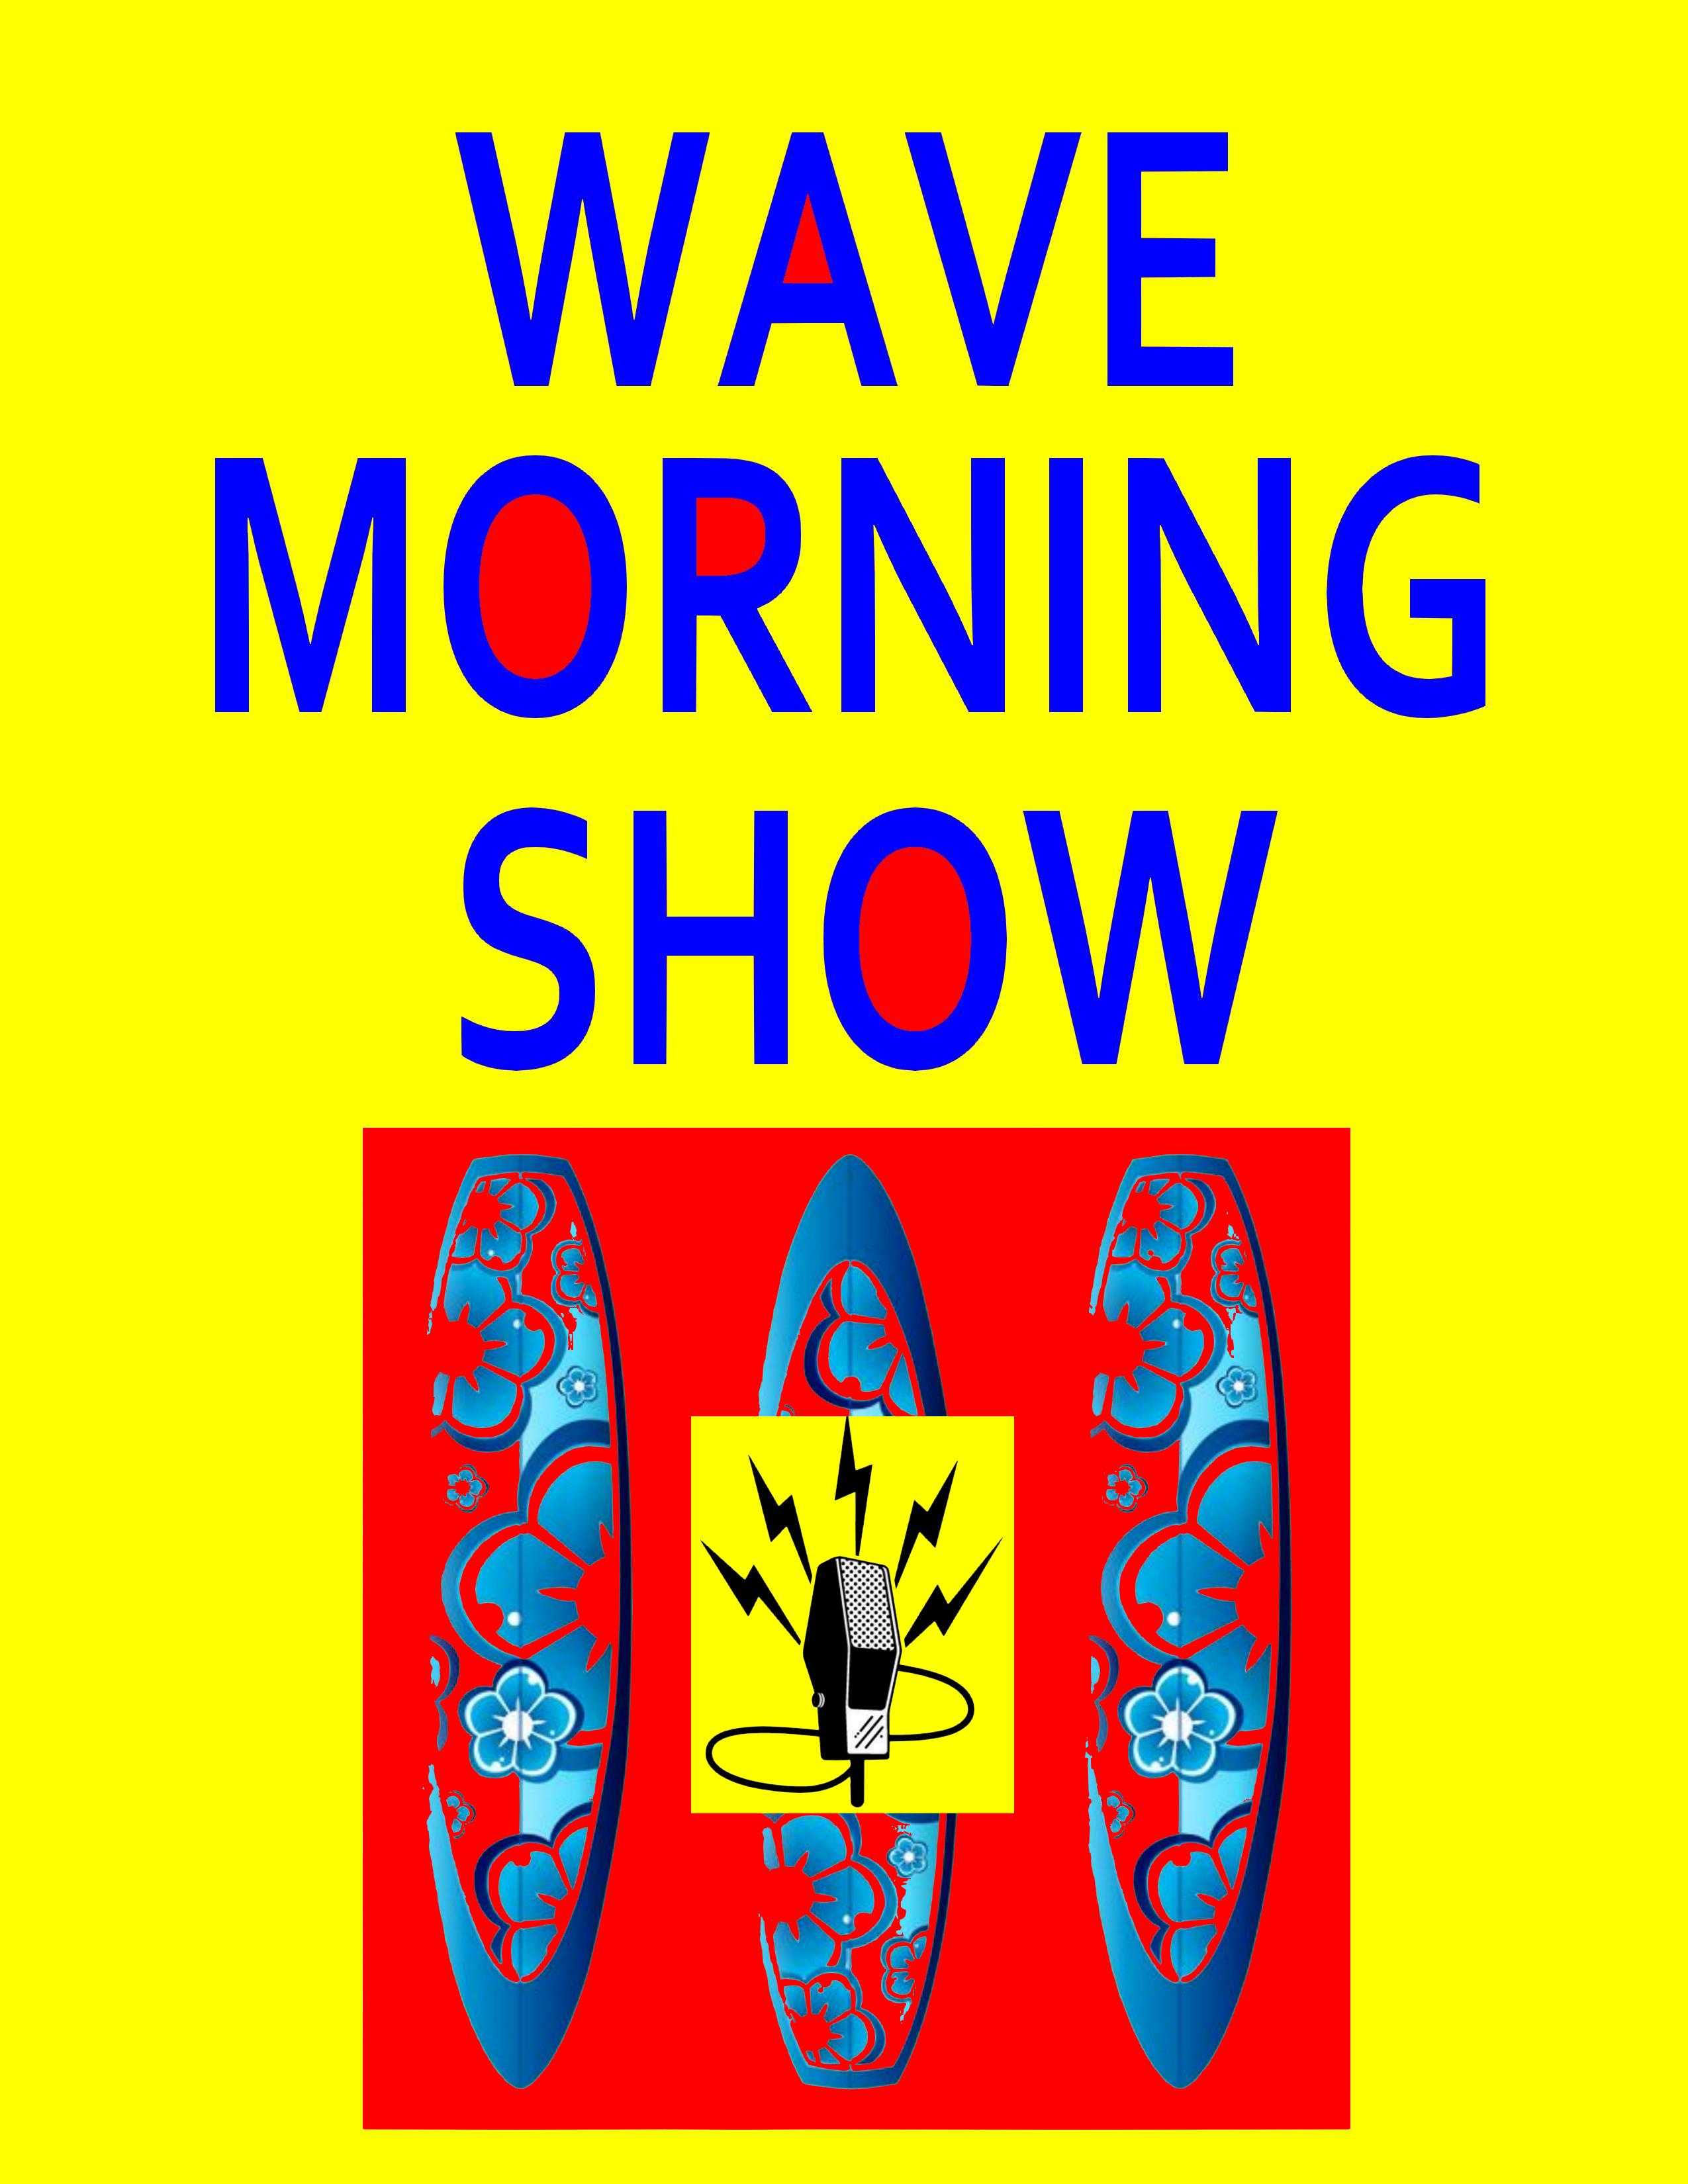 Wave Morning Show.jpg